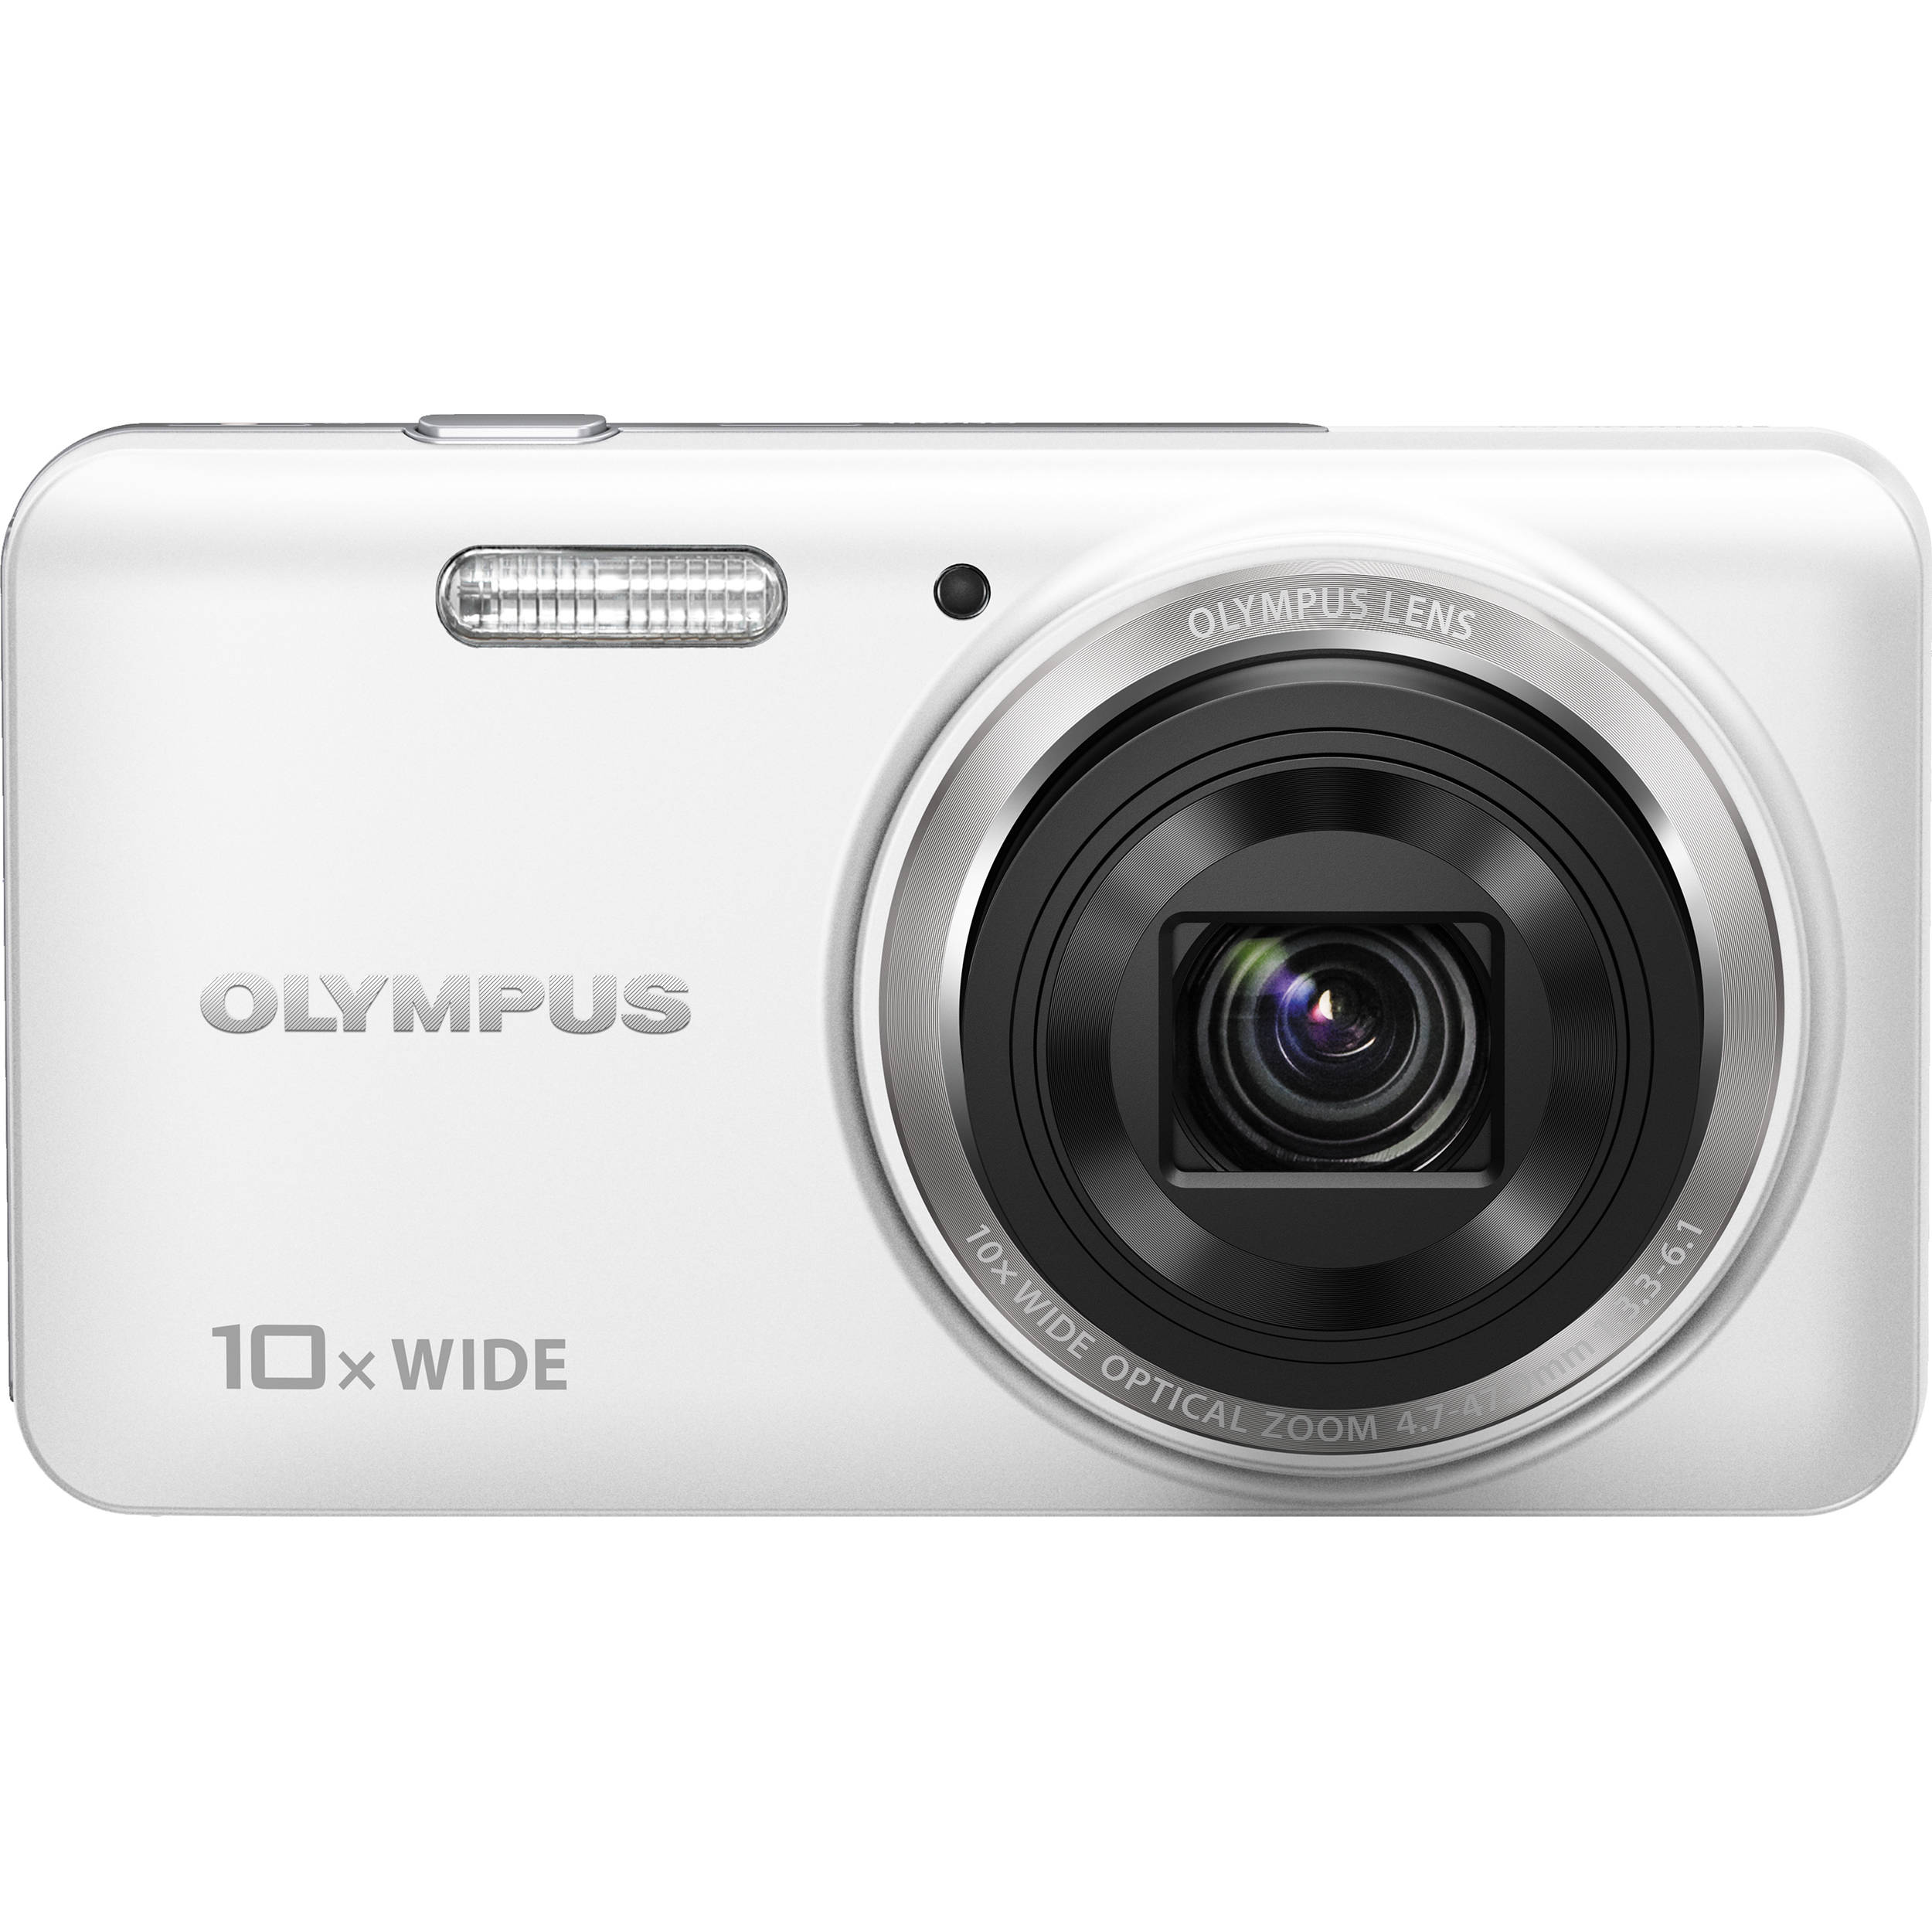 Enter To Win 1 000 Gift Card From Blu Dot: Olympus VH-520 IHS Digital Camera (White) V108060WU000 B&H